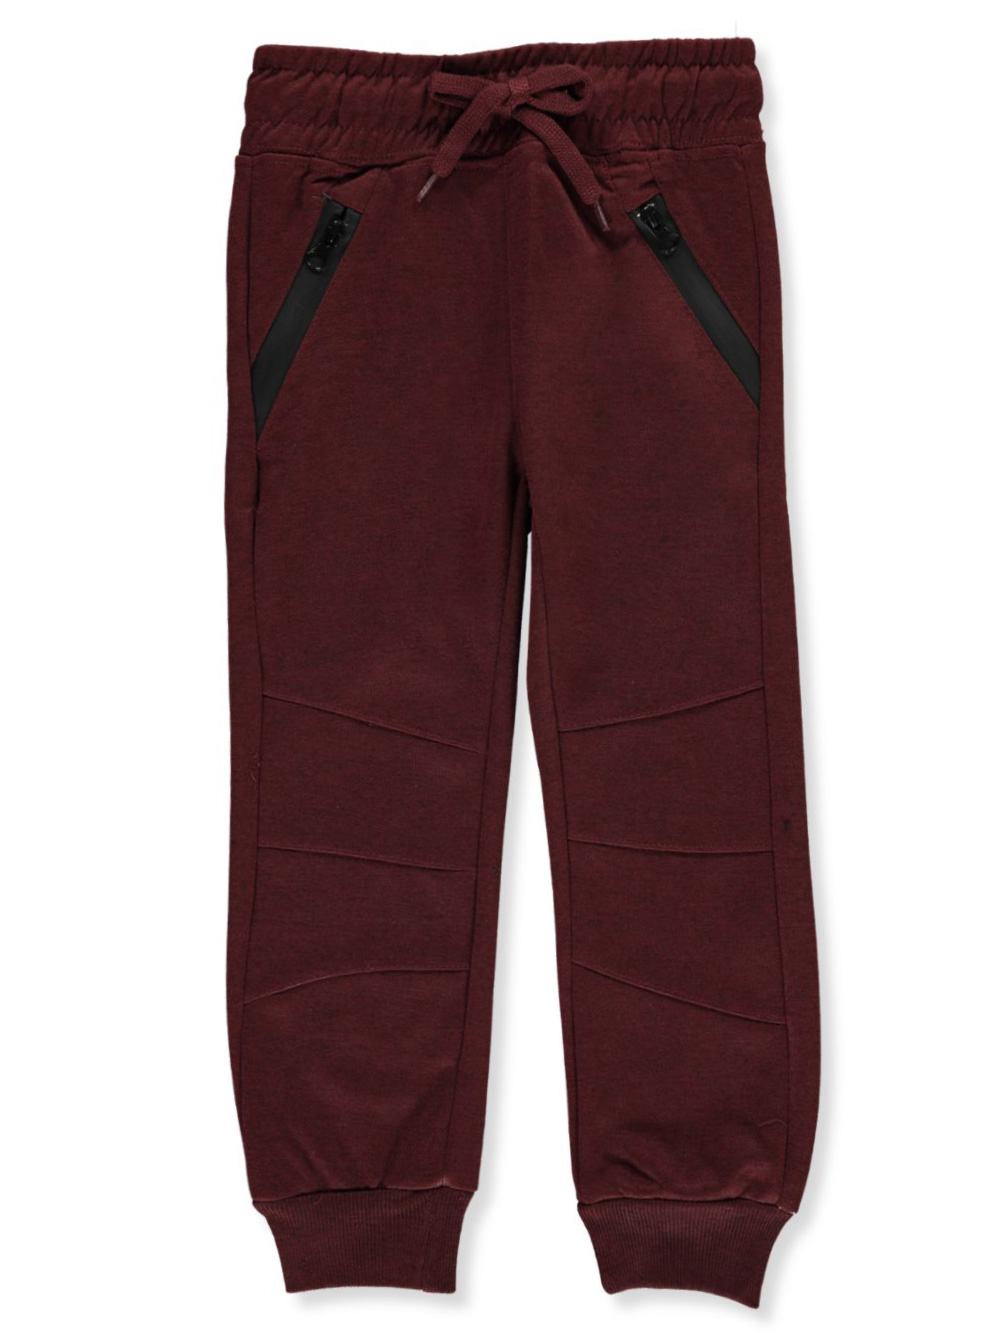 Burgundy Sweatpants/Joggers